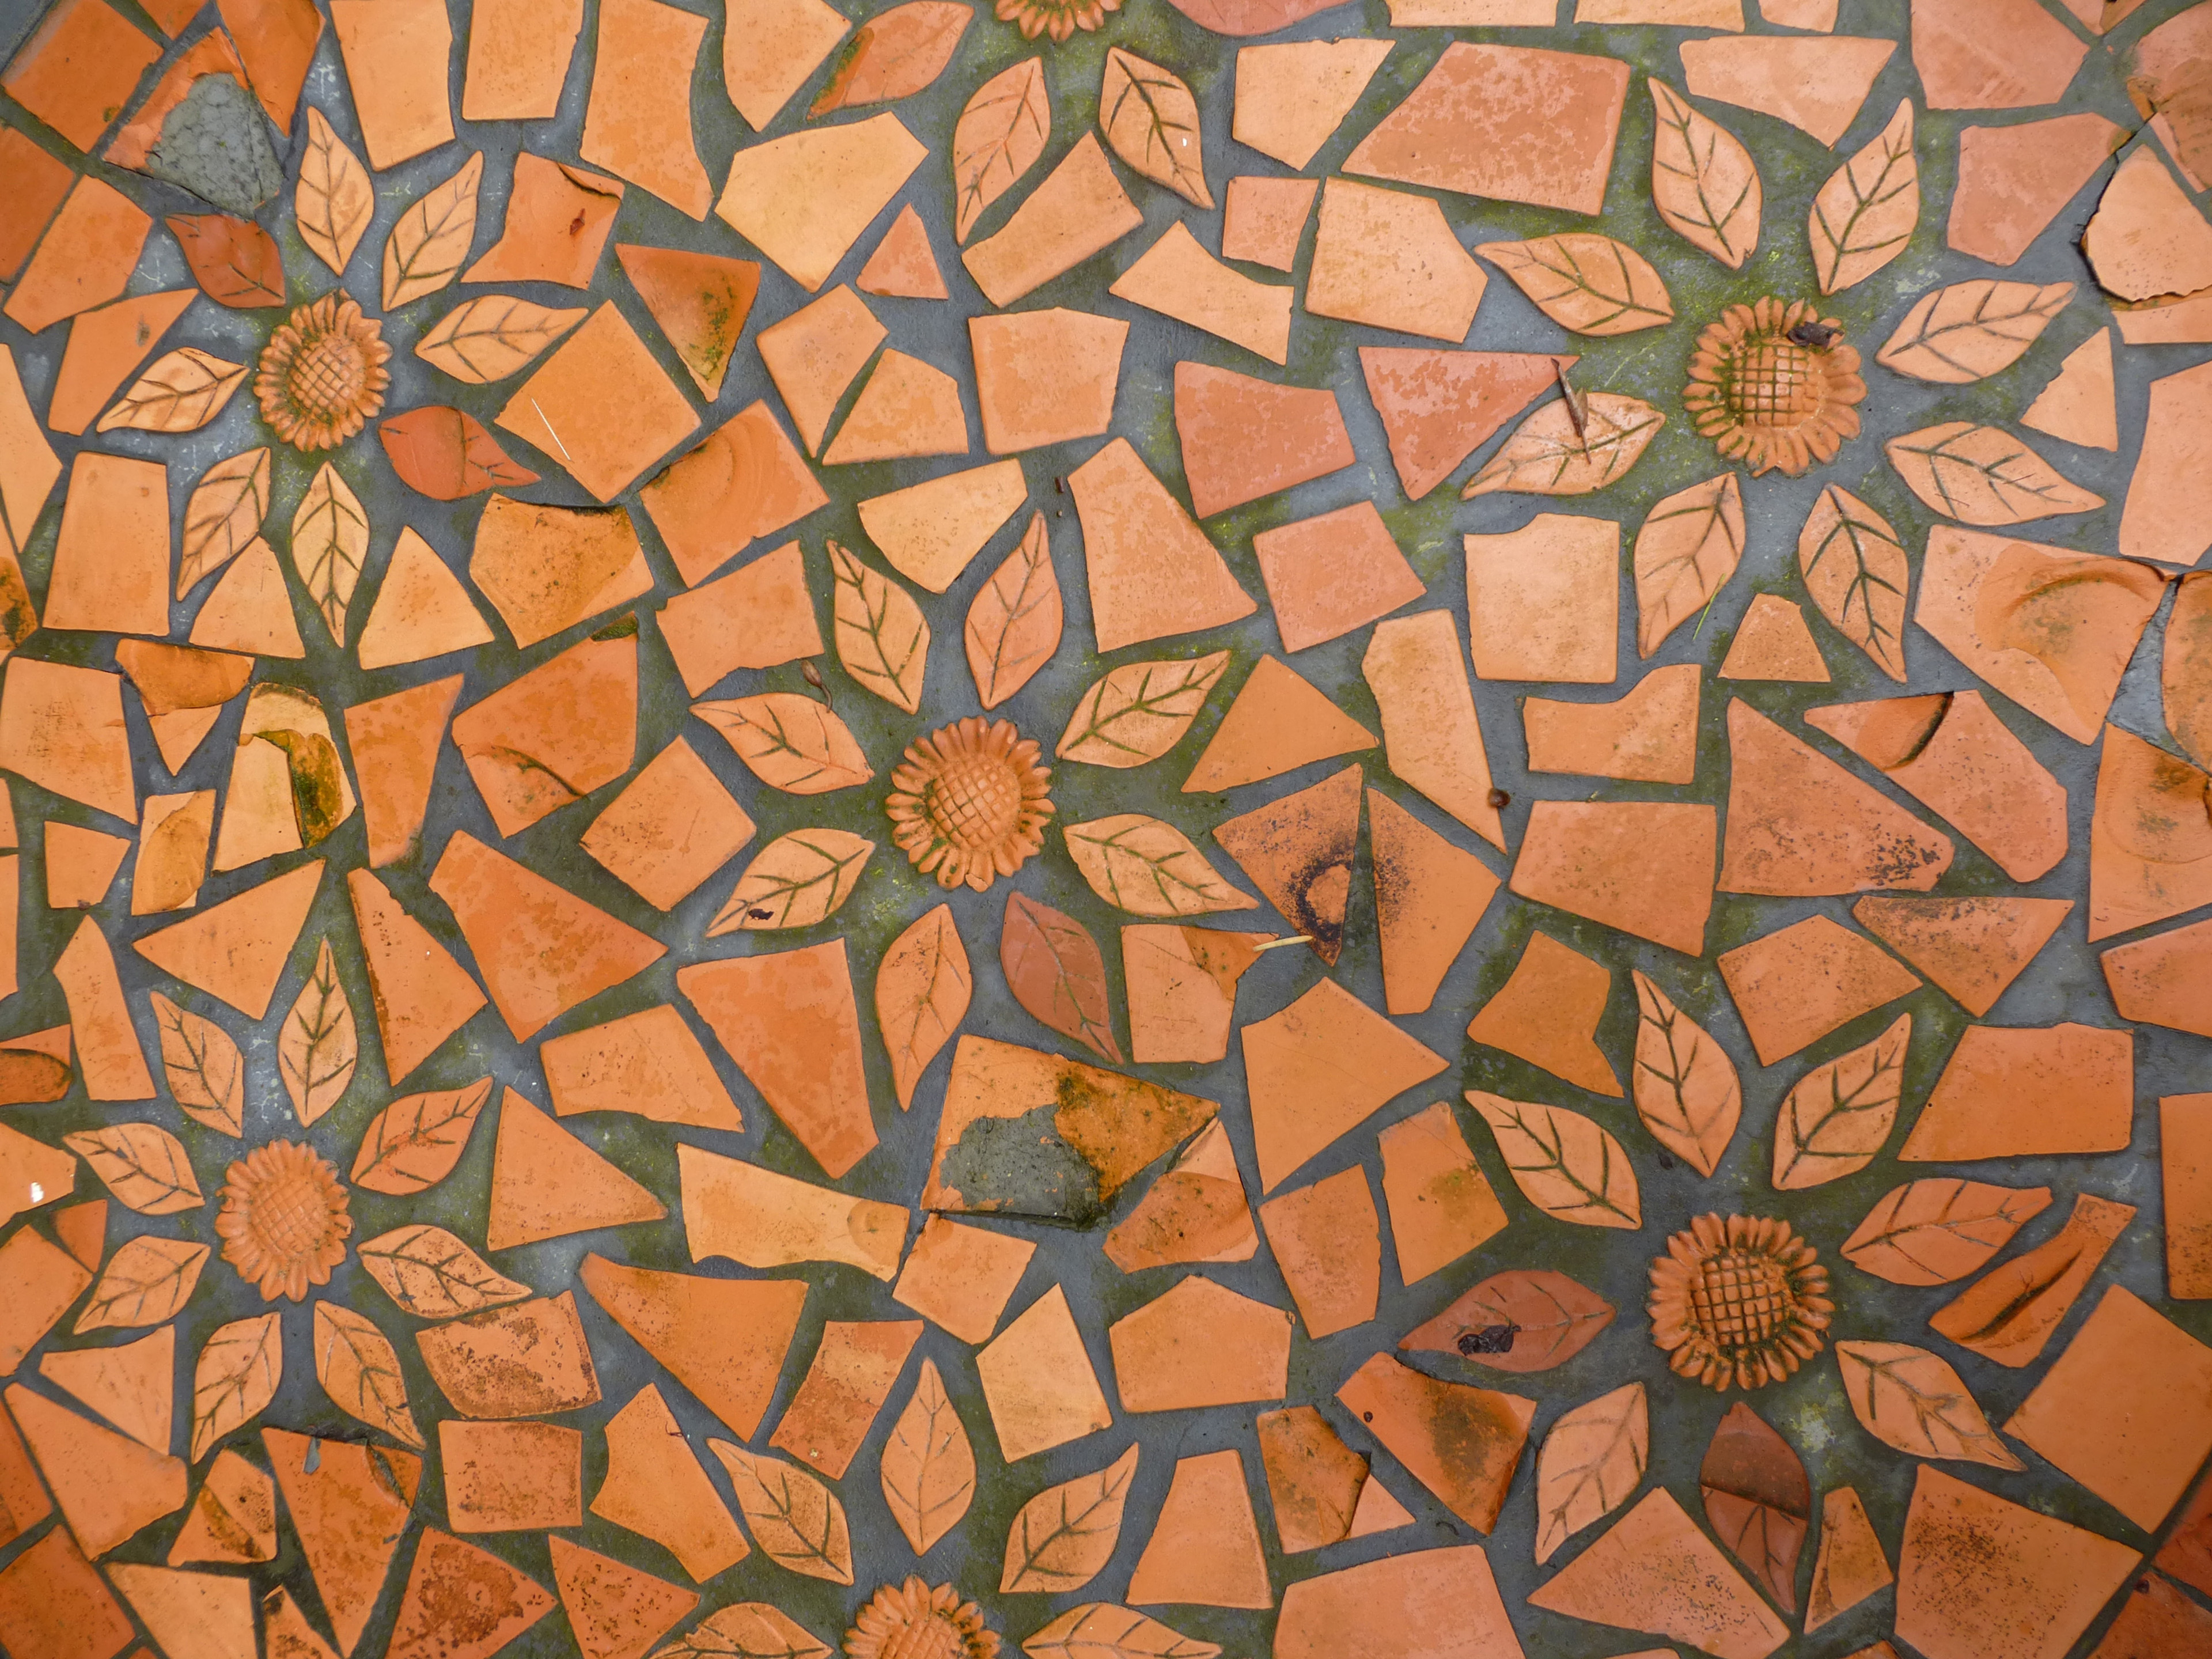 Decorative pavement with floral pattern made of various shapes of terracotta, high-angle close-up